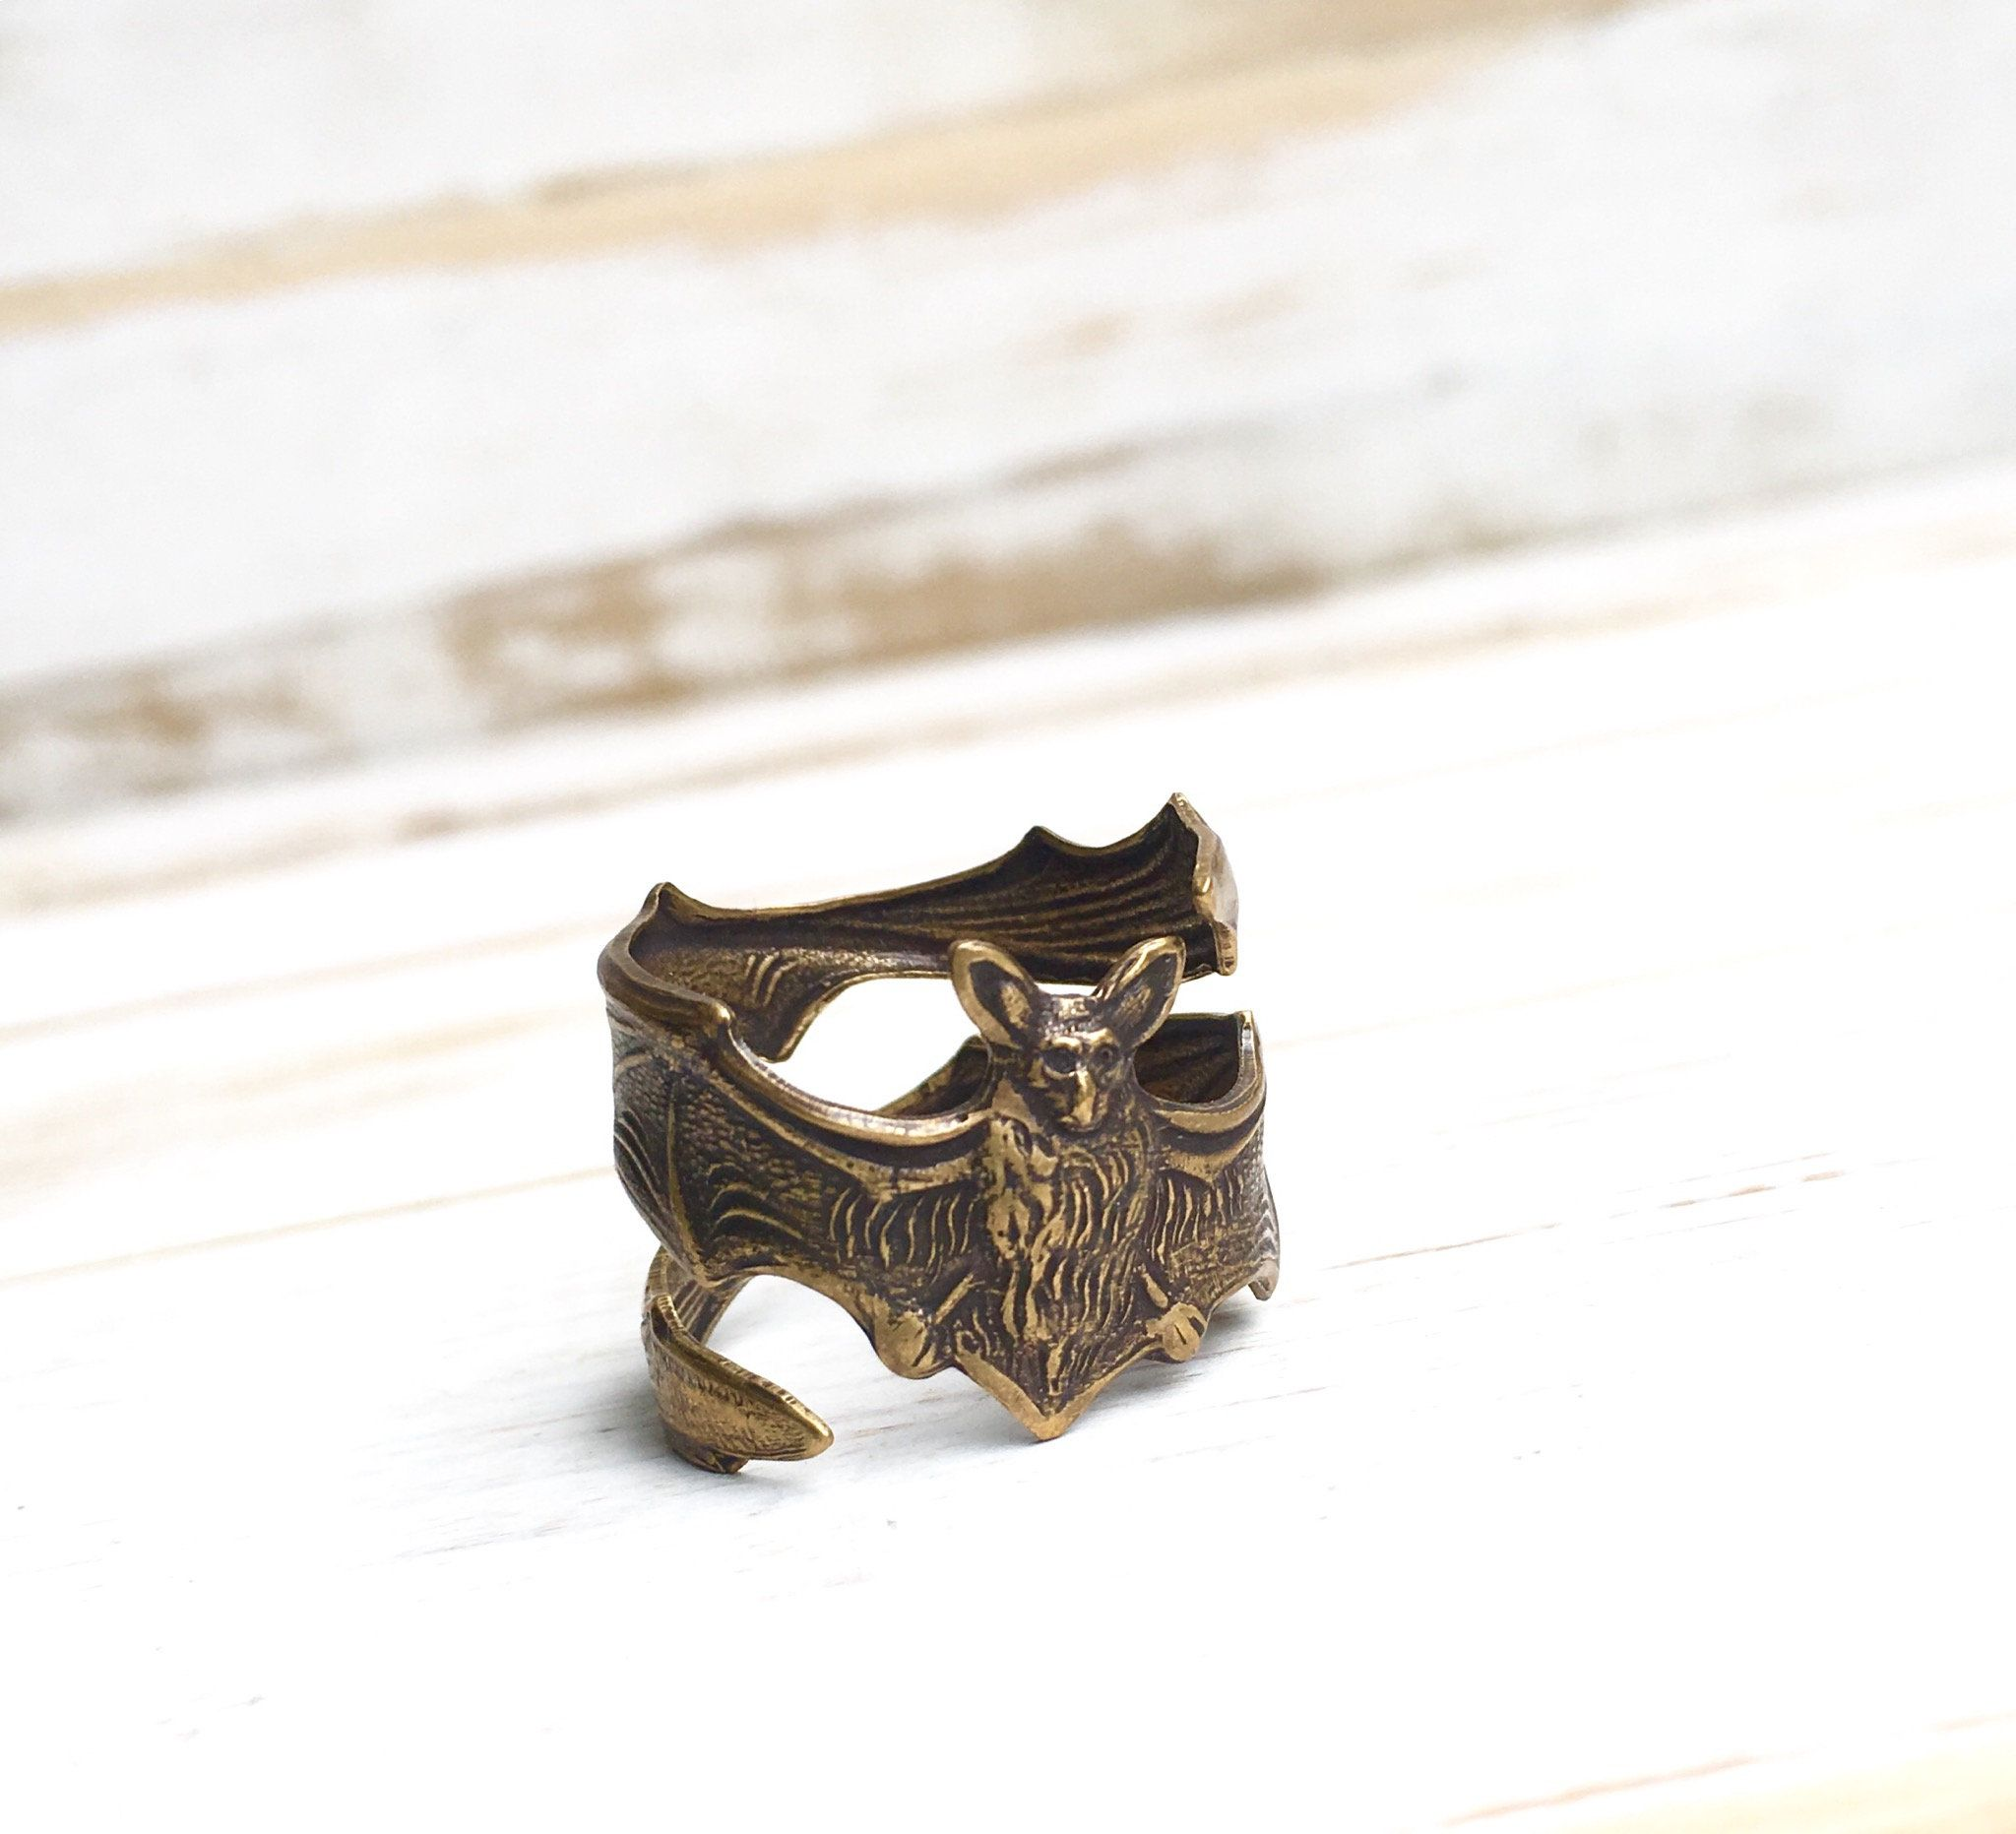 Bat Ring Antiqued Bat Jewelry Gift for Him Rustic Steampunk Thumb